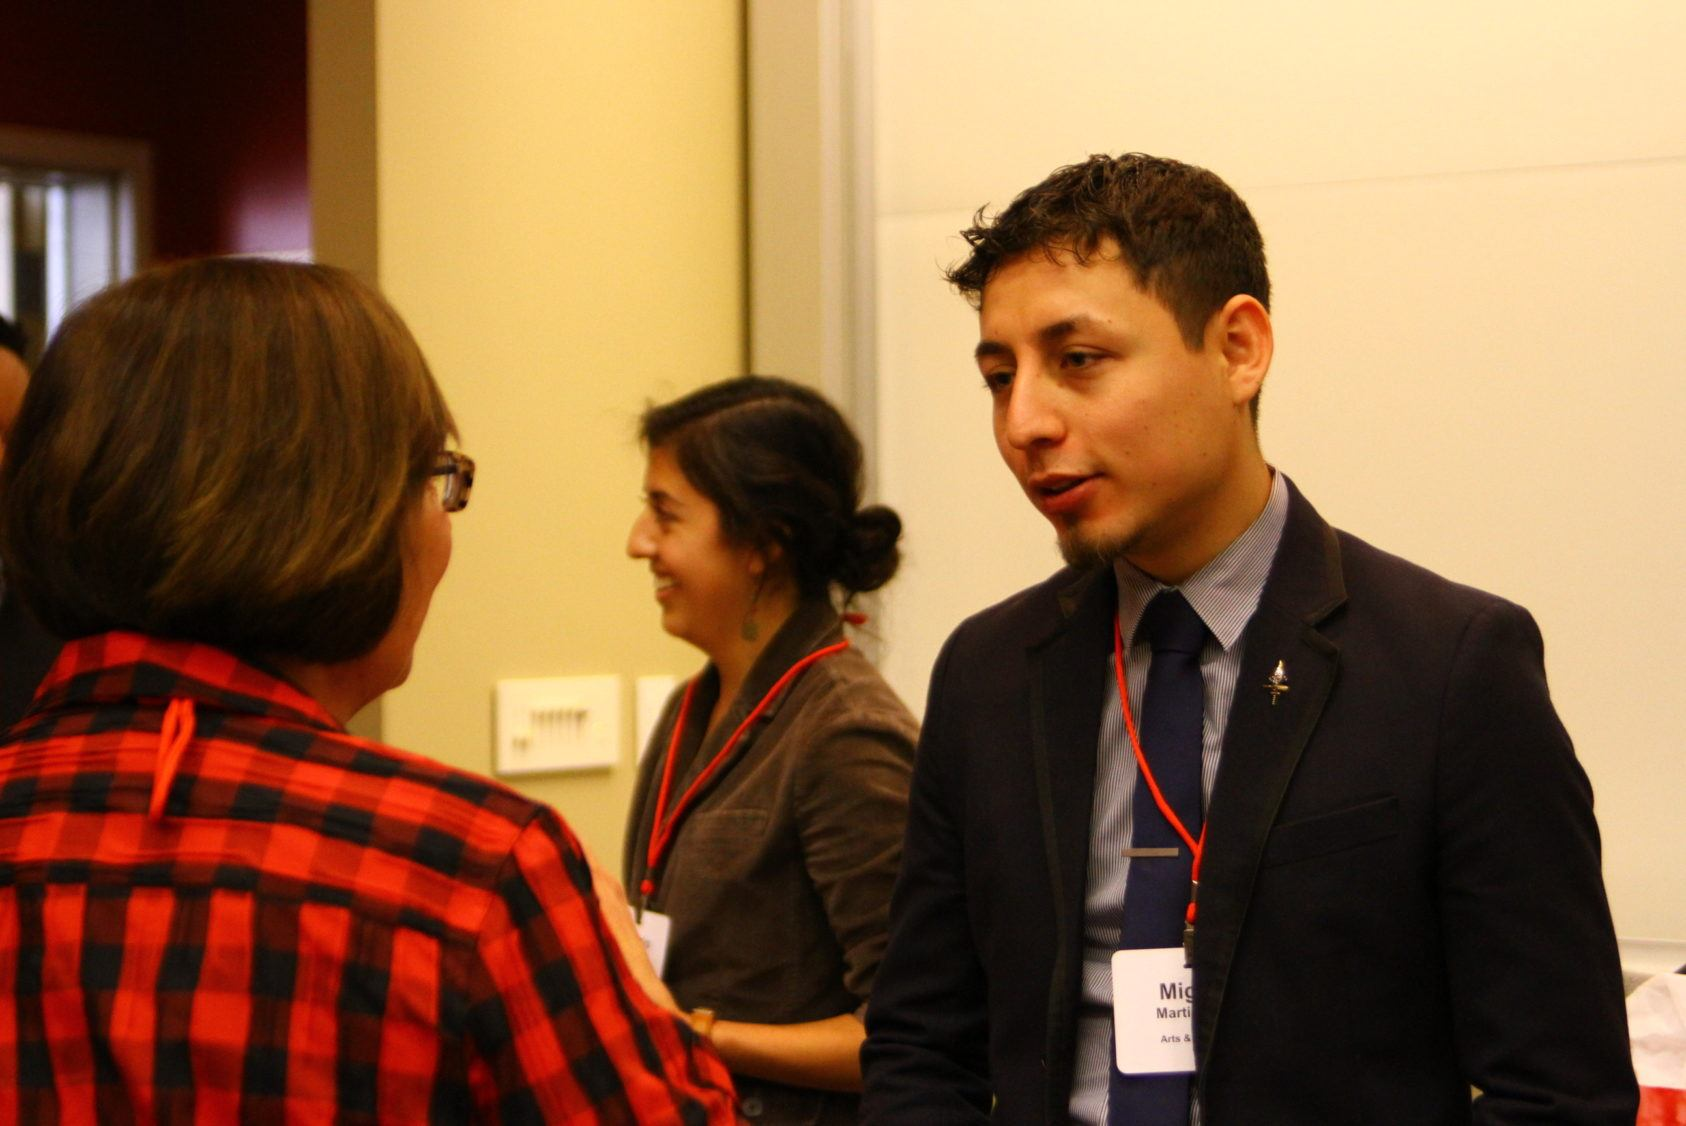 Miguel Martinez chatting with a TCAM attendee